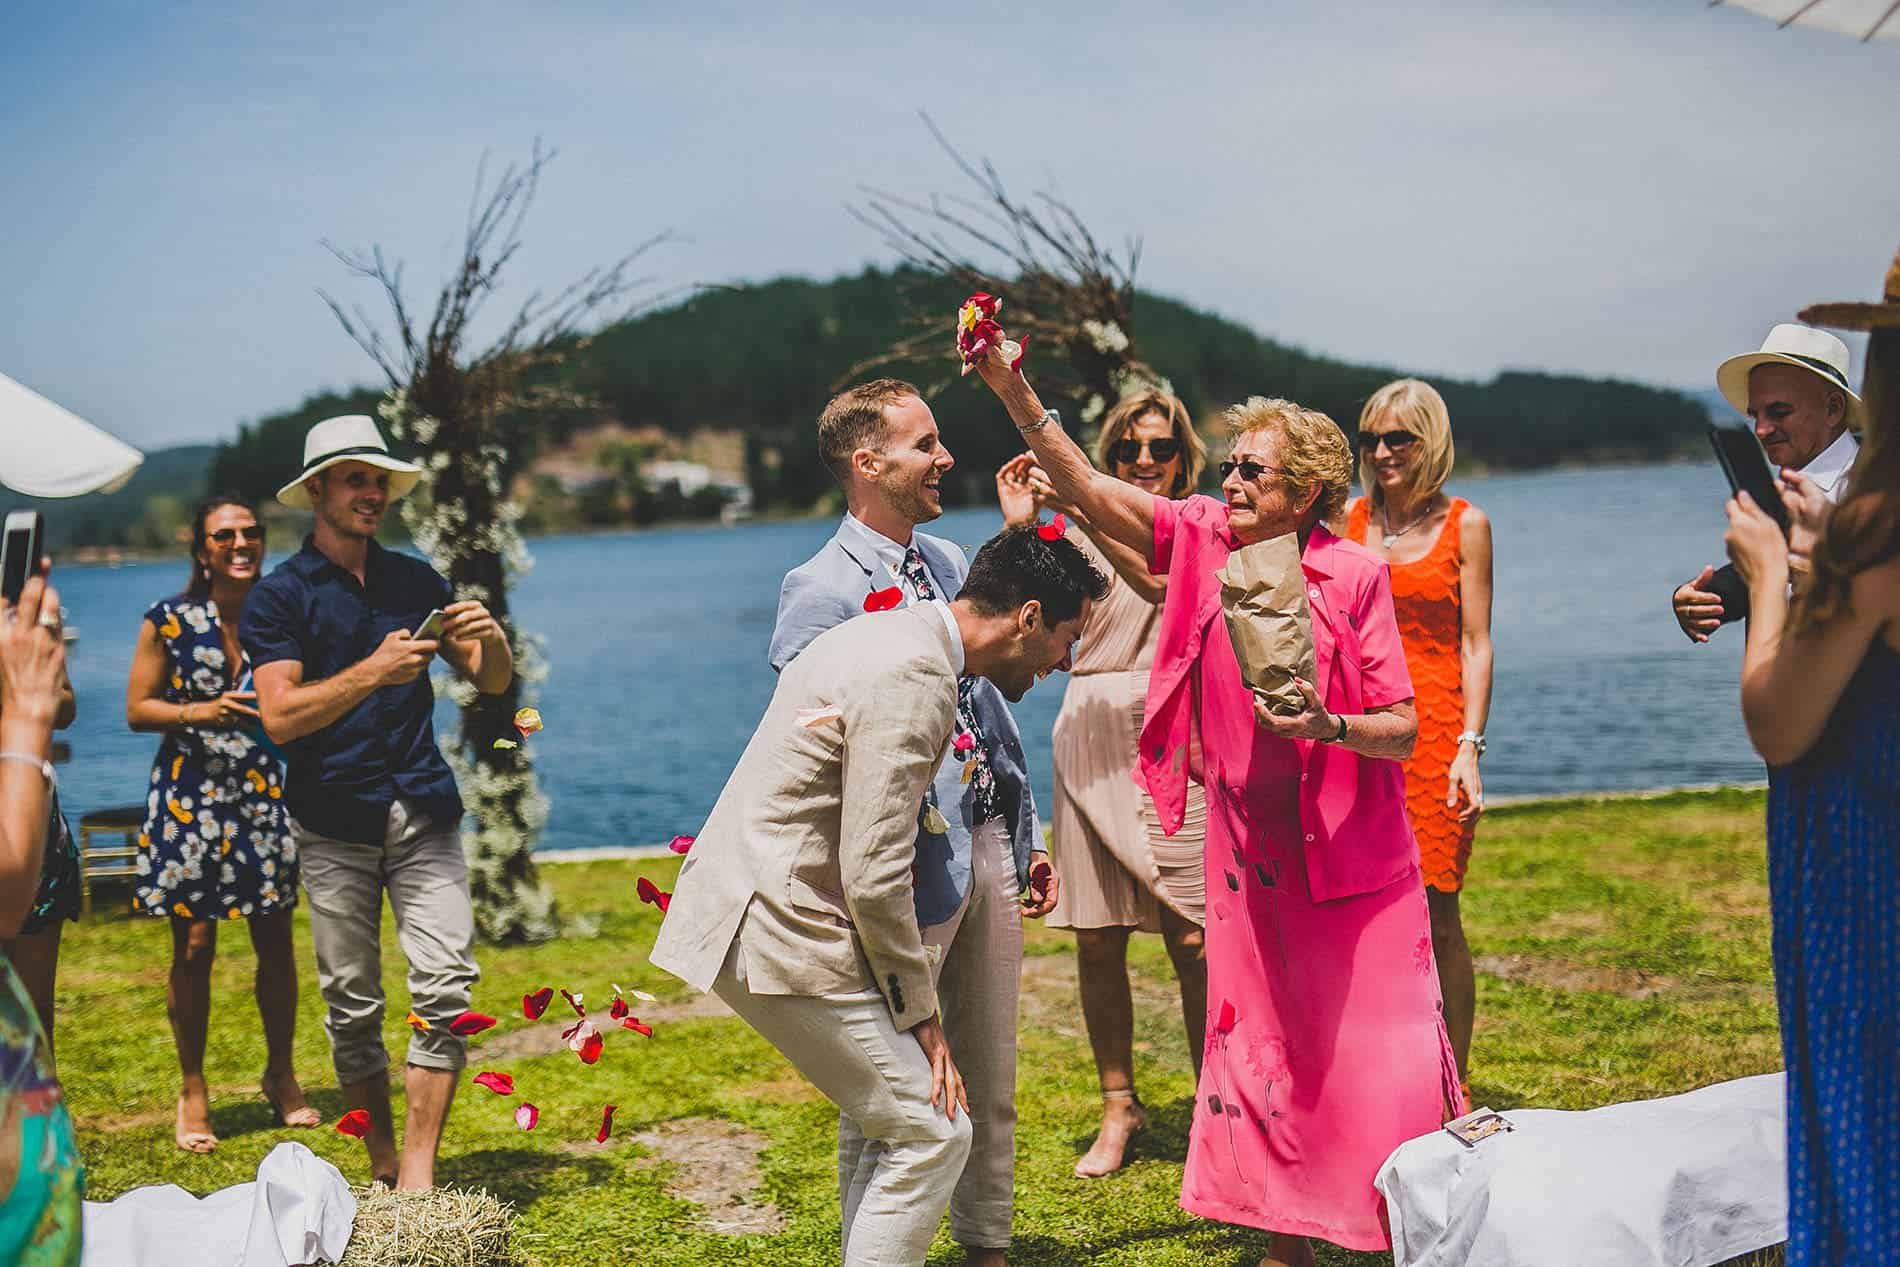 granma throws rose petals after the wedding ceremony